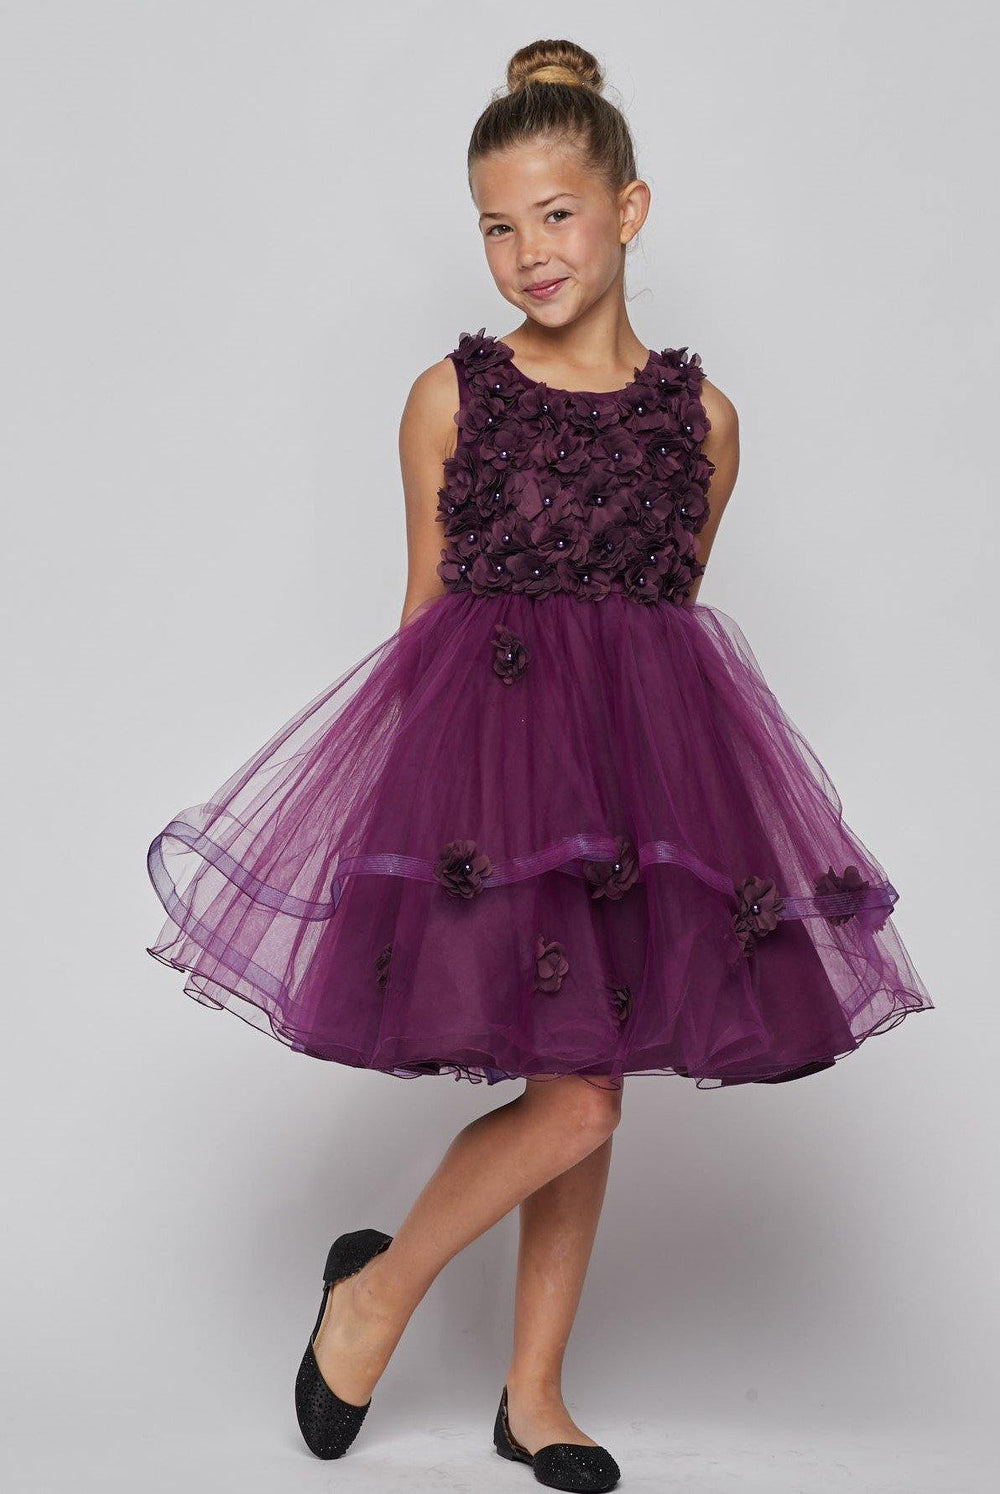 Sleeveless Embellished Short Party Flower Girls Dress - The Dress Outlet Purple